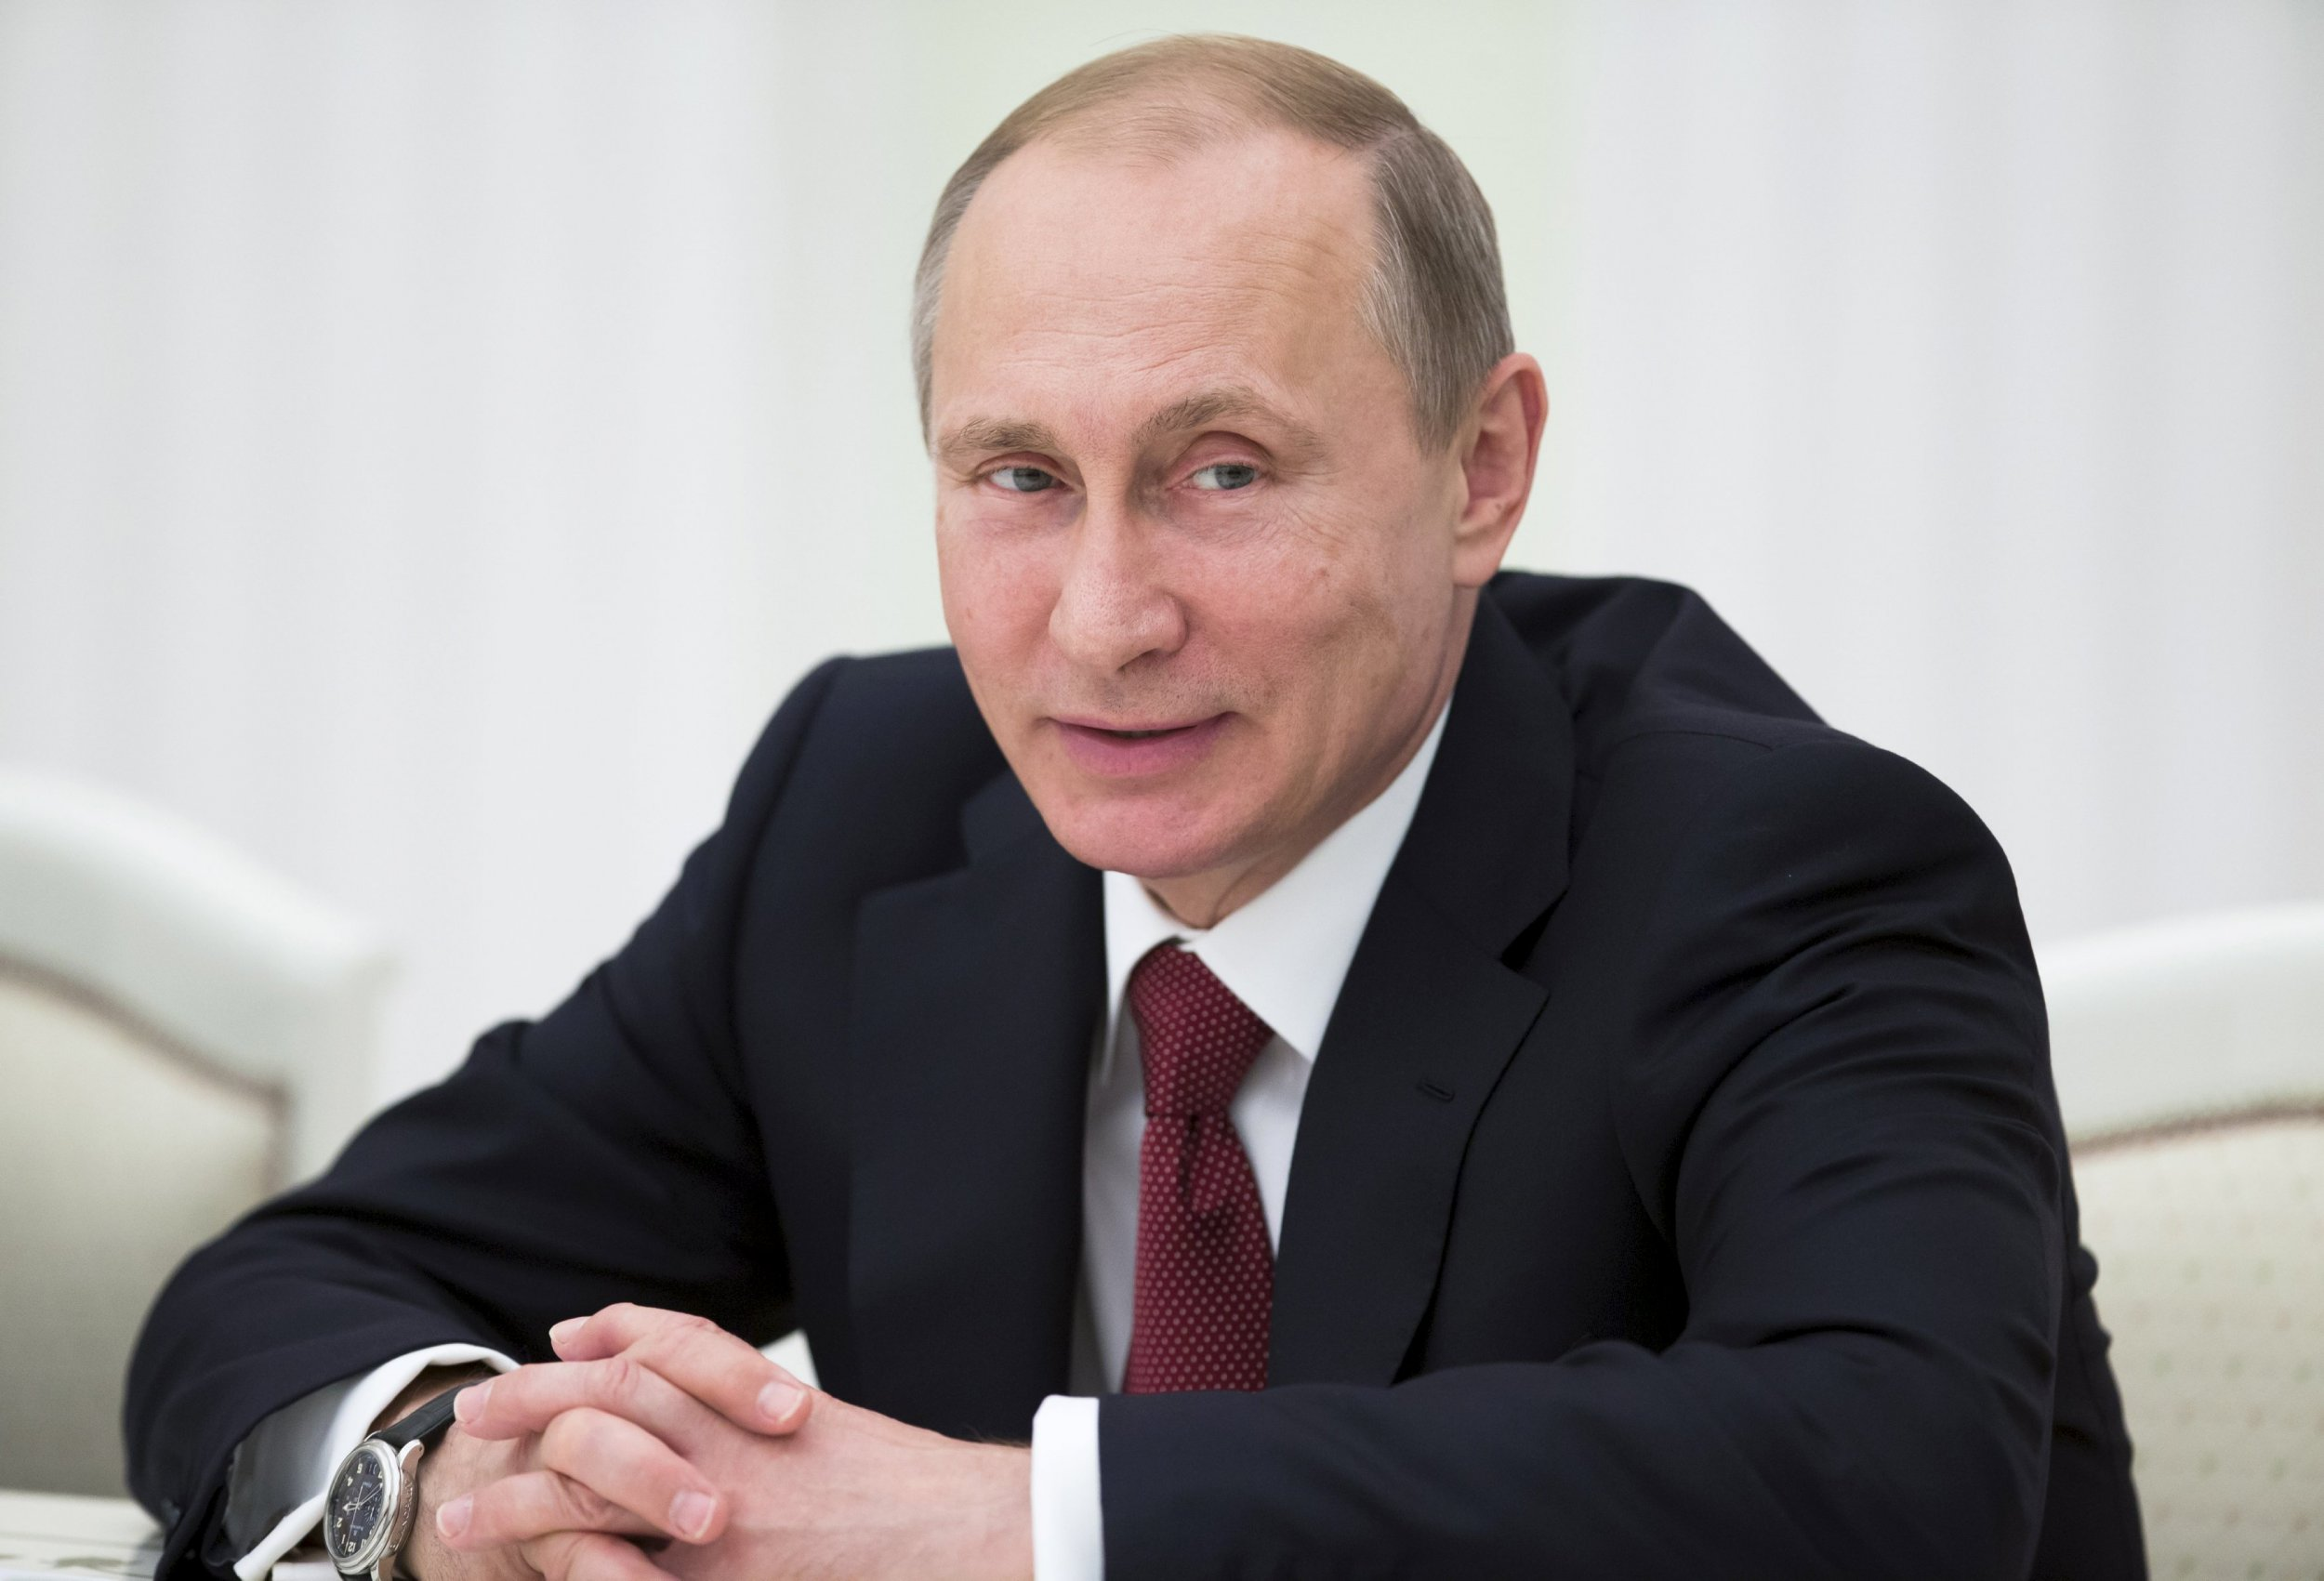 Putin Is Isolating Russia From the World